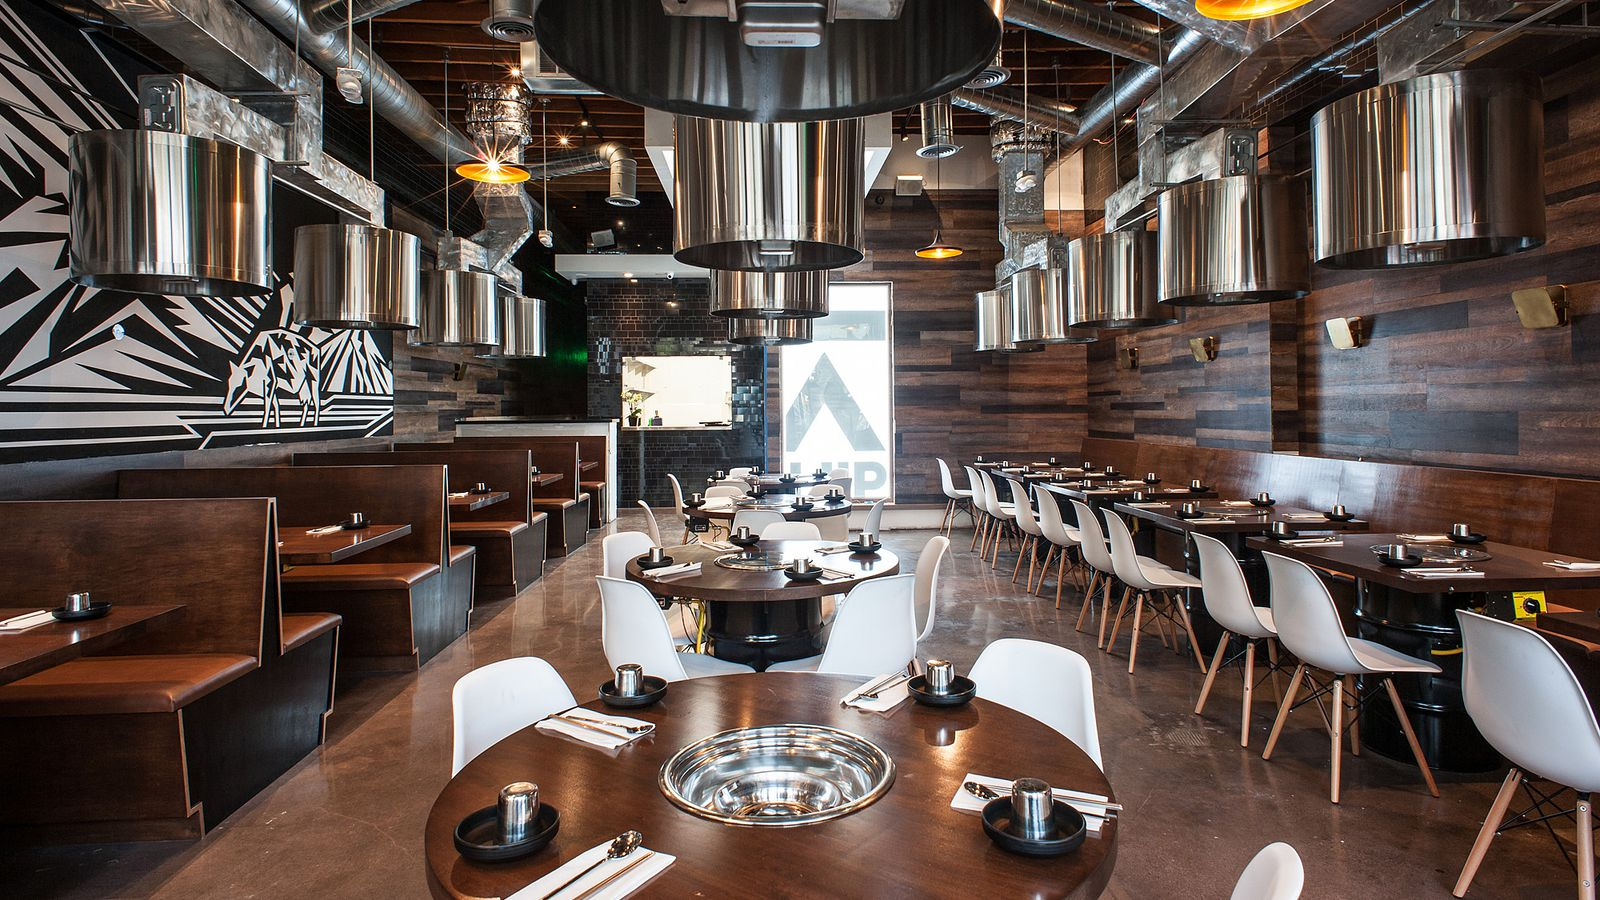 Hanjip officially opens tonight in culver city eater la